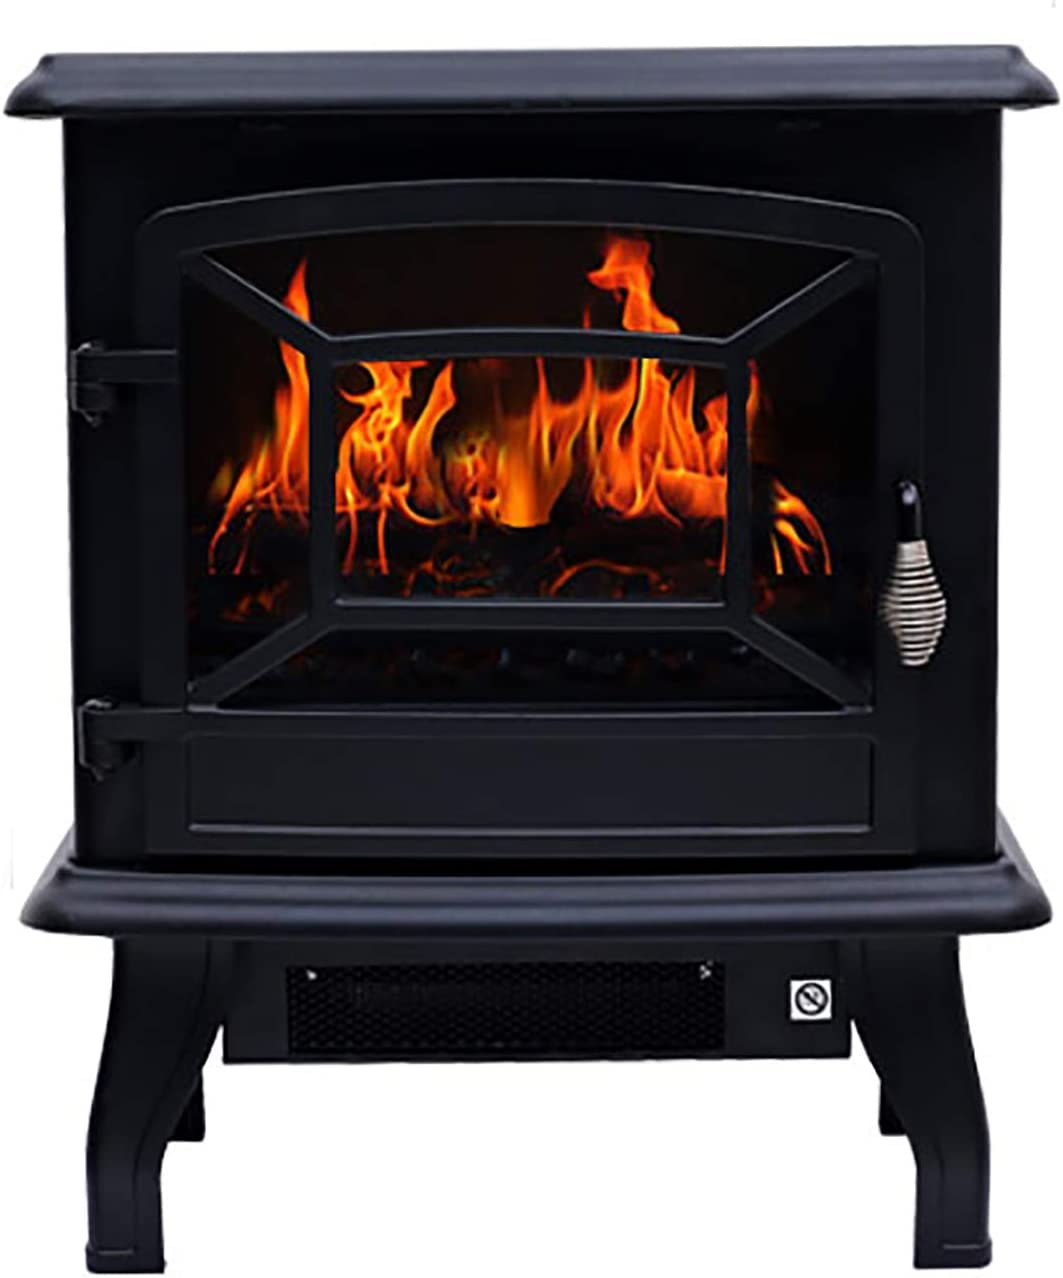 lei shop Compact Electric He Stove Freestanding Max 70% OFF Manufacturer OFFicial Fireplace